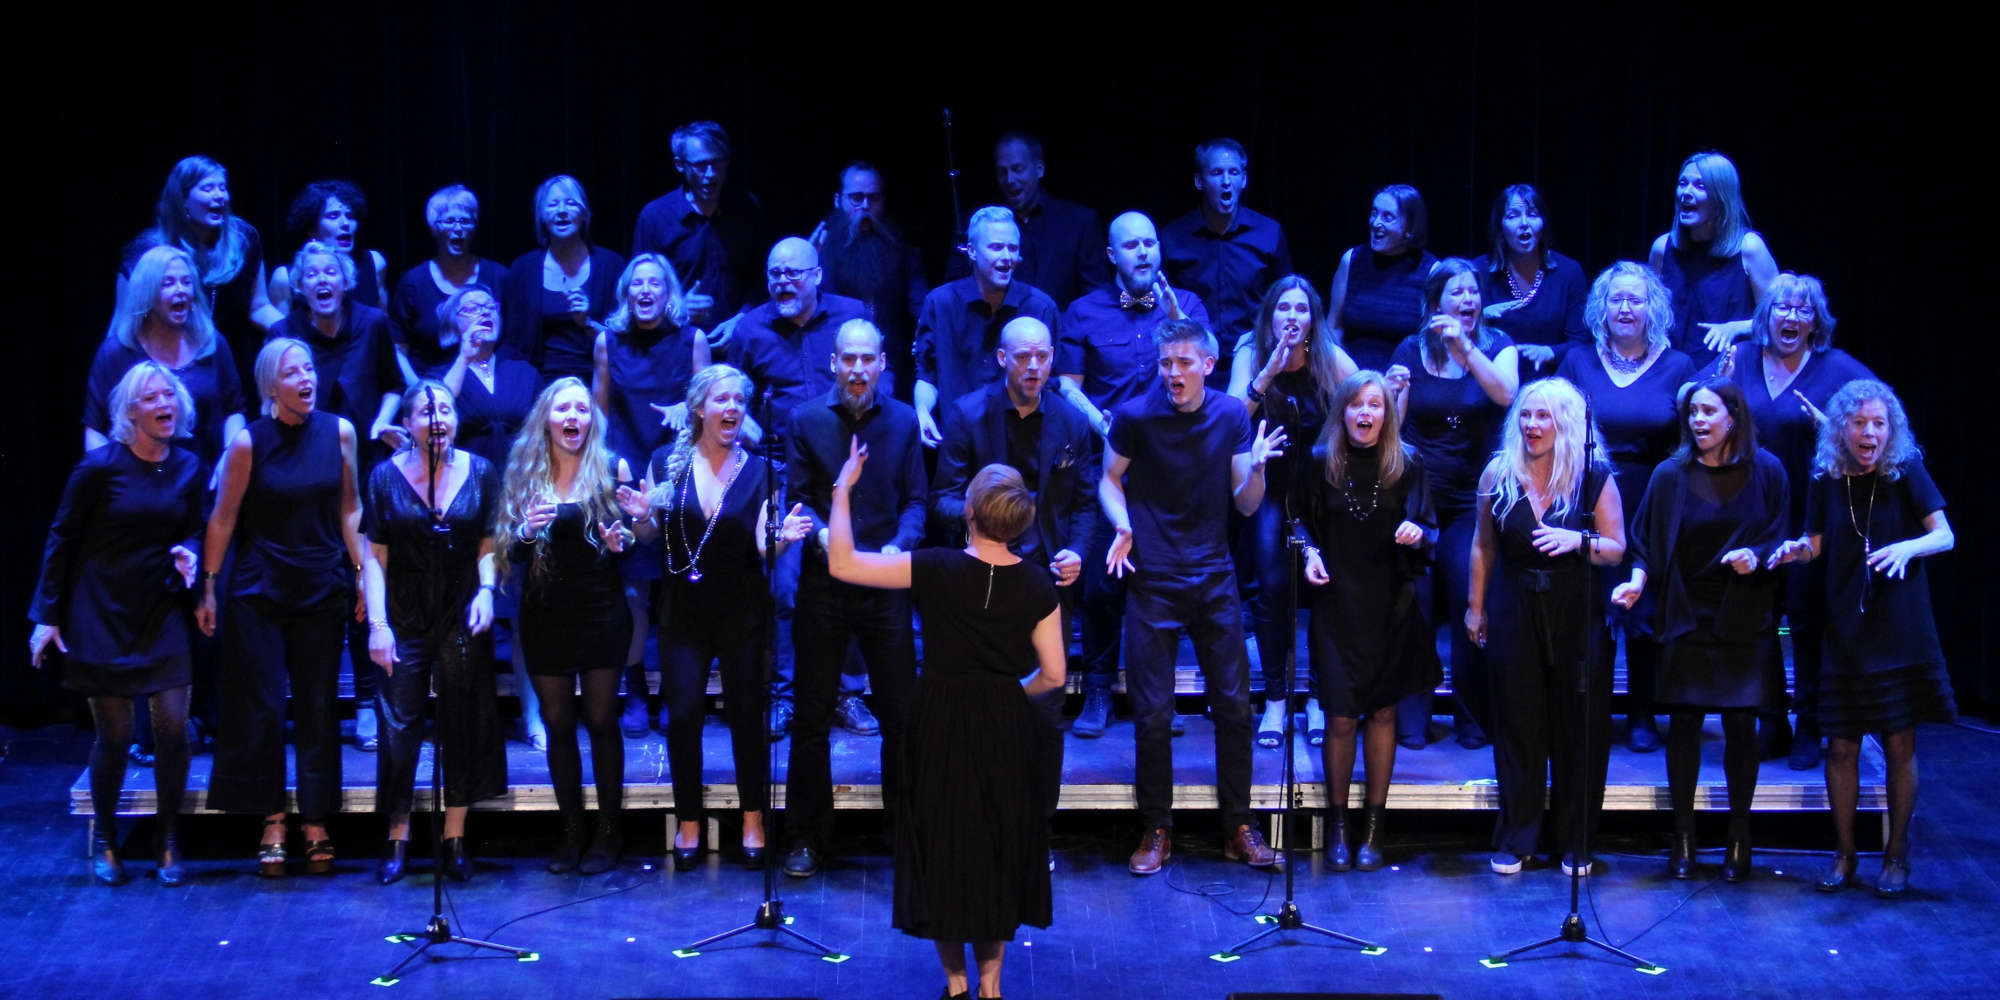 It's not over – Rejoice Gospel Choir med band!